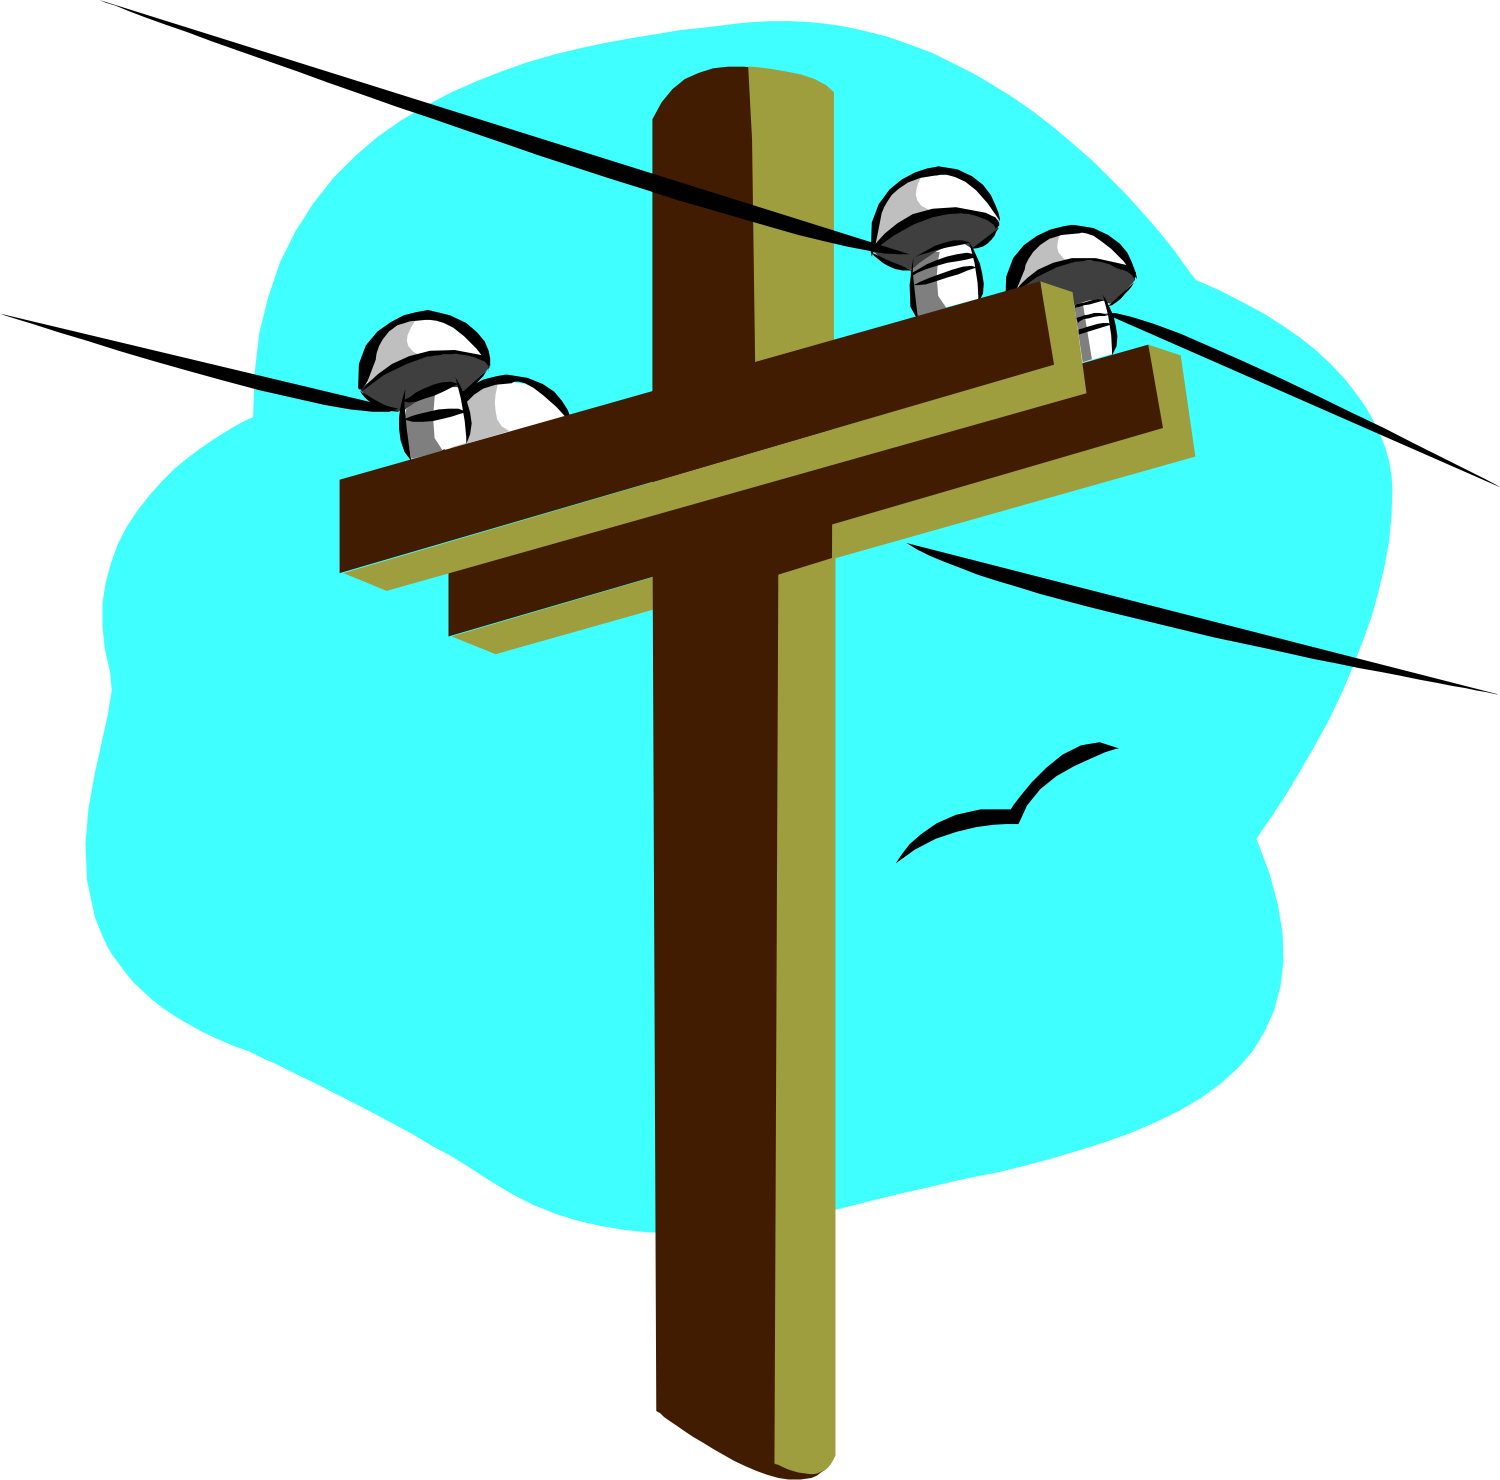 Power distribution clipart.